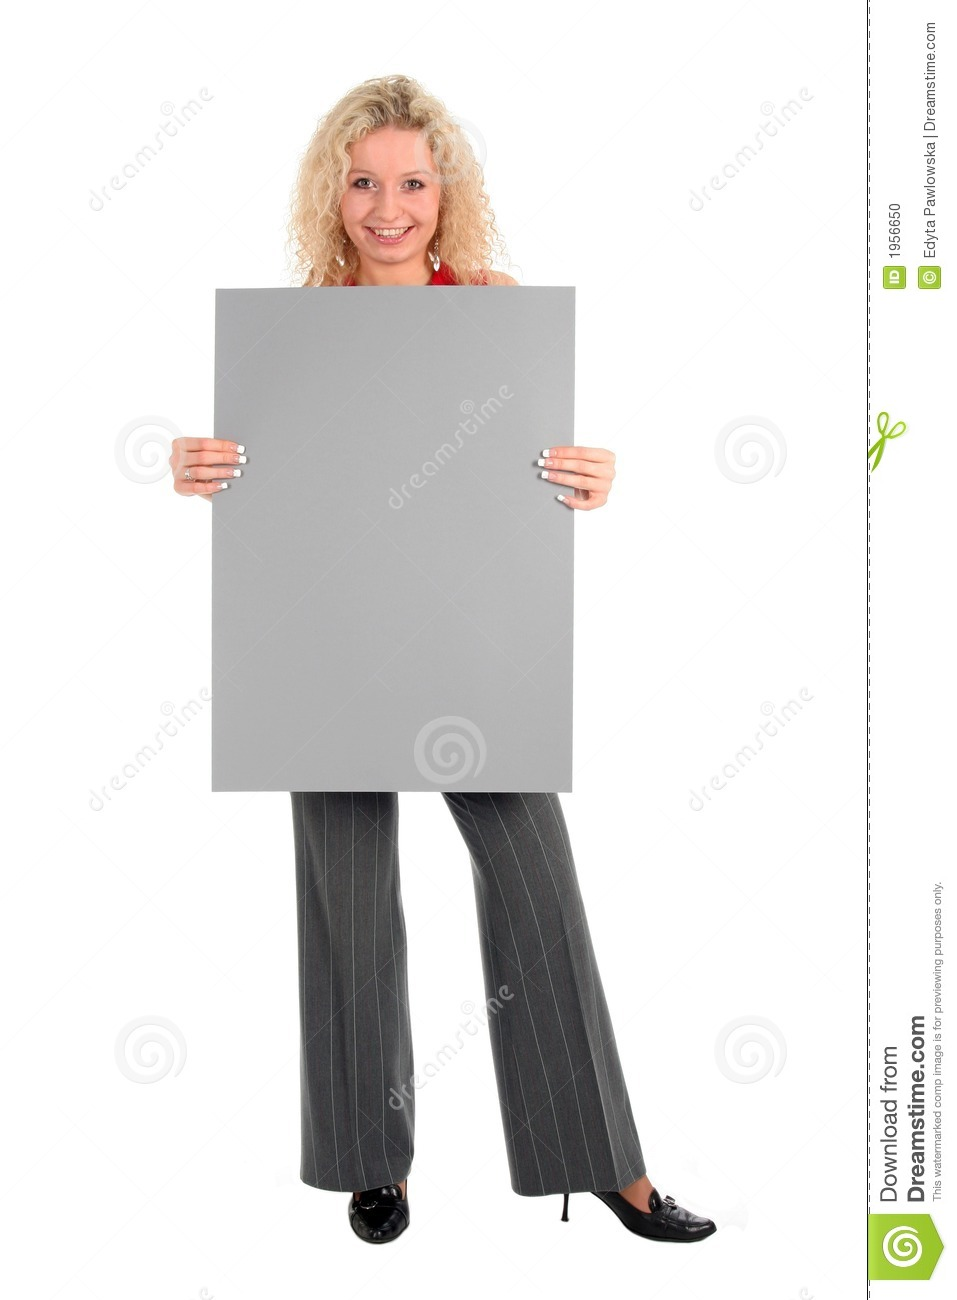 woman holding blank poster board stock photo image of background